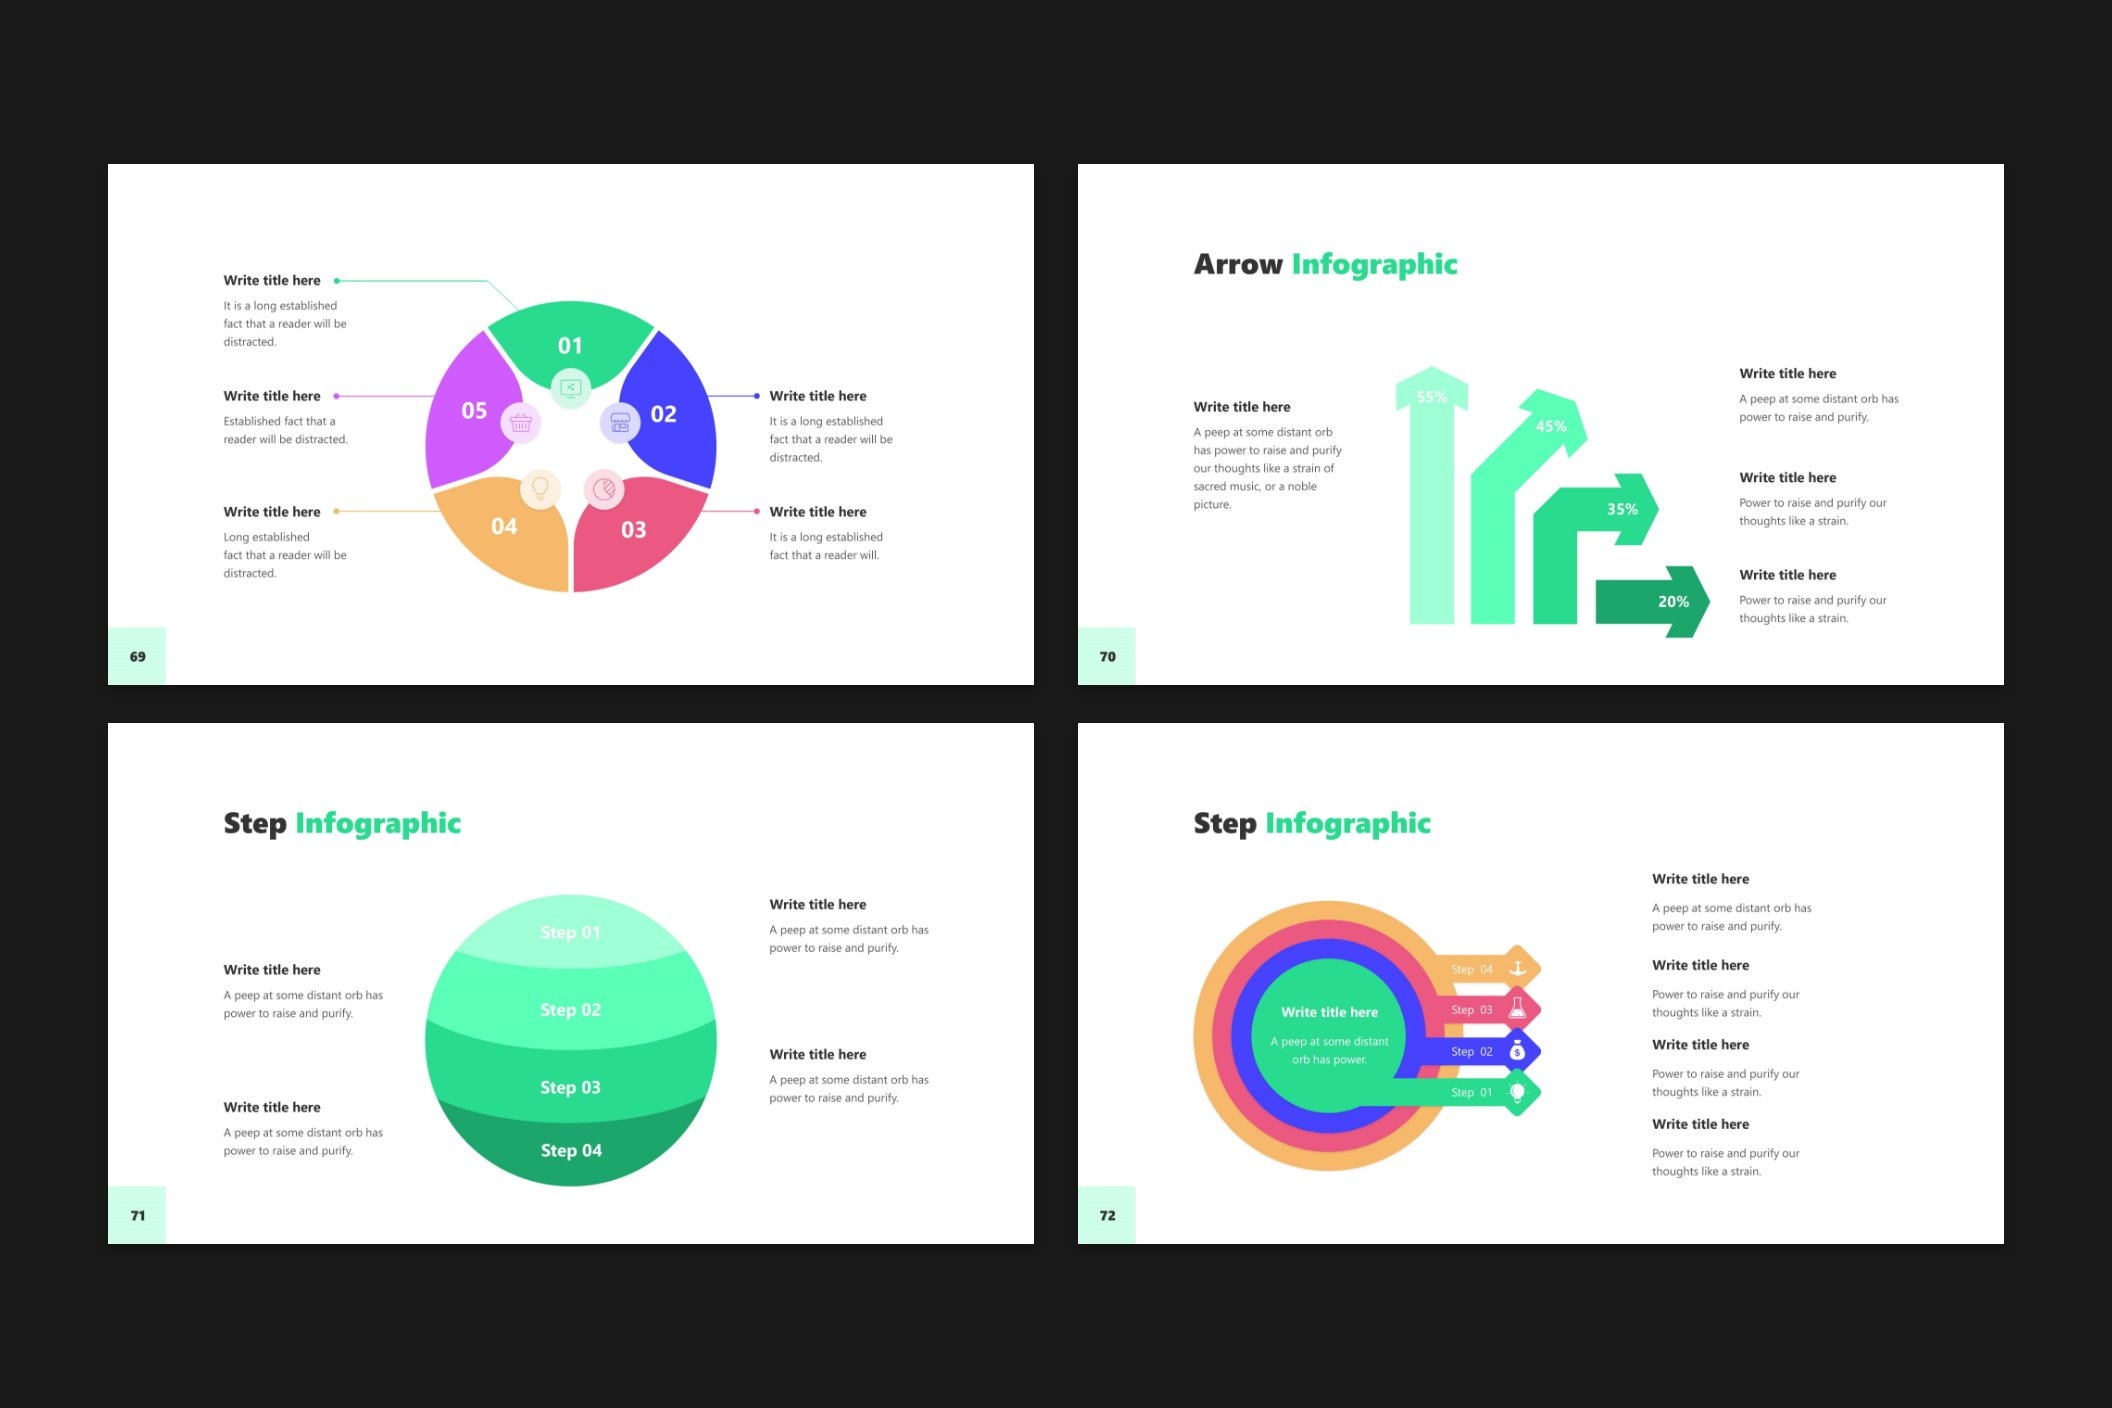 Moreover, the template provides different formats of infographics that will facilitate the delivery of information to the consumer.